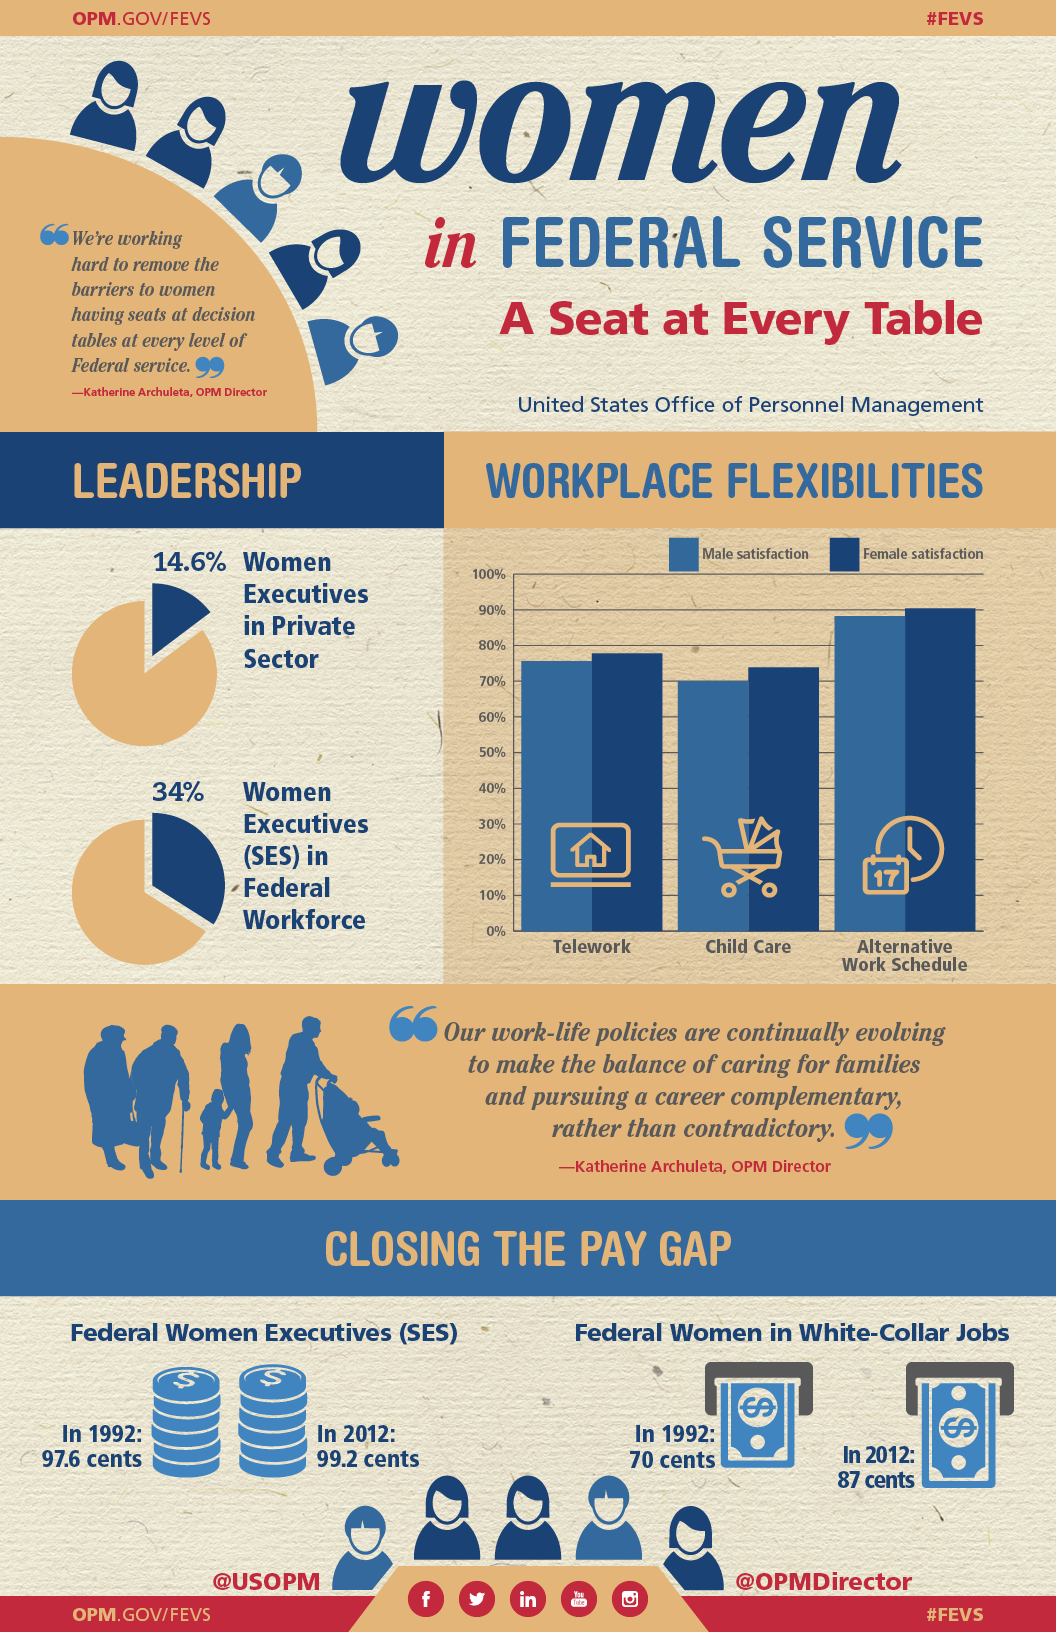 This is an infographic of the Women's Report from the 2014 Federal Employee Viewpoint Survey results. The top of the infographic shows the web address to the Federal Employee Viewpoint Survey website at www.opm.gov/fevs and hashtag #FEVS.The infographic has 4 sections. In section 1, the title reads, Women in Federal Service, A Seat at Every Table. United States Office of Personnel Management. This section also shows a series of women and men avatars seated around a table.  OPM Director Katherine Archuleta's quote reads:  We're working hard to remove the barriers to women having seats at decision tables at every level of Federal service. In section 2, the Title reads, Leadership. Image of a pie chart that shows 14.6 percent of women executives in the private sector. Another image of a pie chart which shows 34 percent of women executives in senior executive service positions in the Federal workforce. Also in section 2, the Title reads, Workplace Flexibilities. Image of a bar chart which represents men and women who are satisfied with workplace flexibilities, like telework, child care, and the alternative work schedule. Section 3 shows images of people representing Federal employees and their family members, from babies to the elderly who benefit from work life policies. OPM Director Katherine Archuleta's quote reads,  our work life policies are continually evolving to make the balance of caring for families and pursuing a career complementary, rather than contradictory. In section 4, the title reads, Closing the Pay Gap. The subtitle reads, Federal Women Executives in senior executive service positions. Image 1 shows the amount of money females in senior executive service positions were paid to the dollar compared to their male counterparts. In 1992, it was 97.6 cents. In 2012, it was 99.2 cents. Under the subtitle, Federal Women in White Collar Jobs, in 1992, women in White Collar Jobs were paid 70 cents to the dollar. In 2012, Women in White Collar Jobs were paid 87 cents to the dollar. This section also shows women and men avatars seated around a table. Images of the U.S. Office of Personnel Management's social media accounts. Find U.S. OPM on Twitter at https://twitter.com/usopm. Find OPM Director on Twitter at https://twitter.com/OPMDirector. Find us on Facebook at https://www.facebook.com/USOPM. Find us on Twitter at https://twitter.com/usopm. Find us on LinkedIn at https://www.linkedin.com/company/opm. Find us on YouTube at https://www.youtube.com/user/USOPM, and find us on Instagram at https://instagram.com/opmdirector/.The very bottom of the infographic shows the web address to the Federal Employee Viewpoint Survey website at www.opm.gov/fevs and hashtag #FEVS.